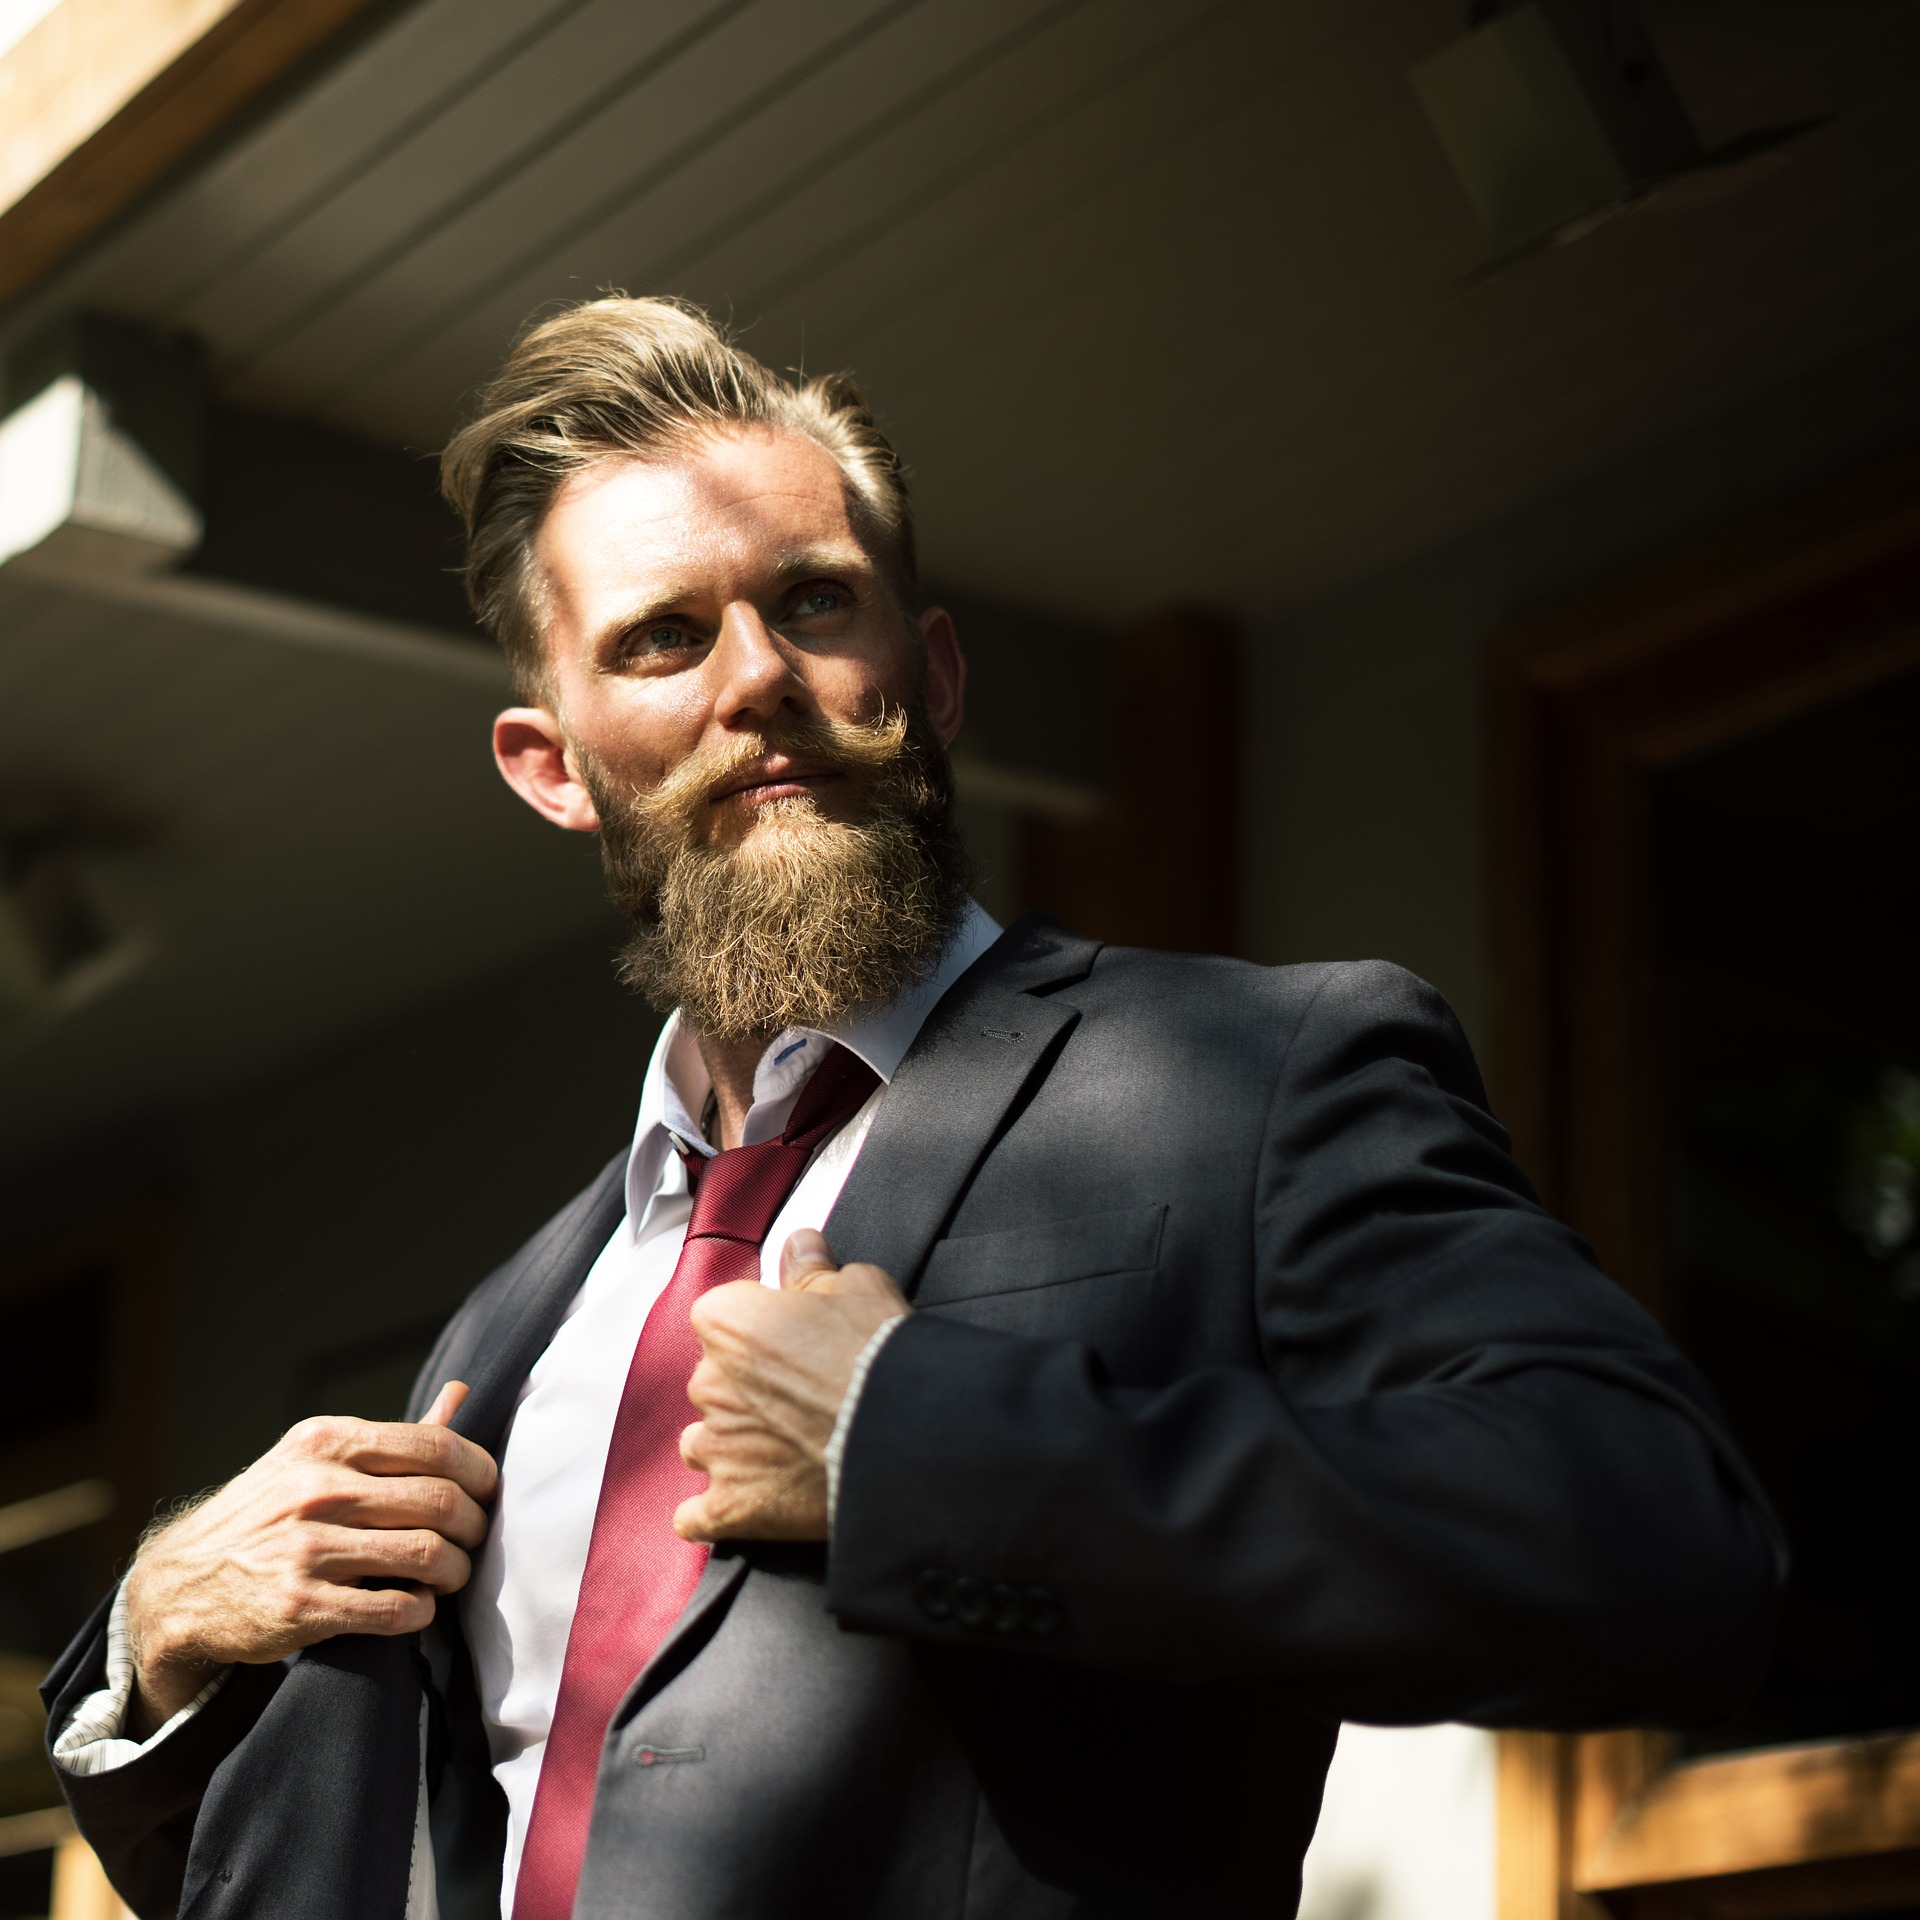 How to Style a Patchy Beard